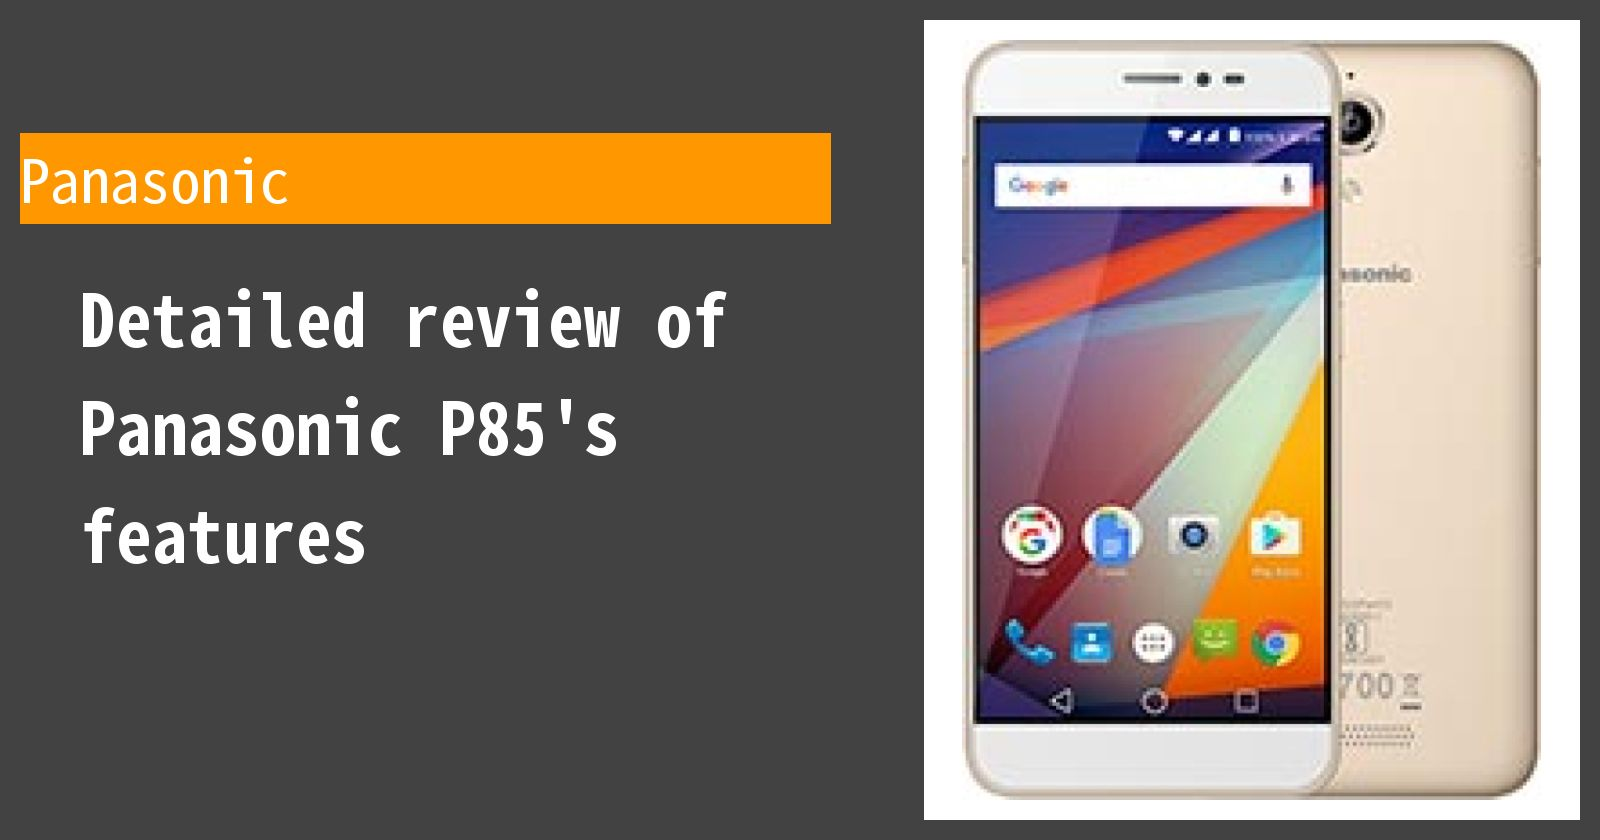 Detailed review of Panasonic P85's features